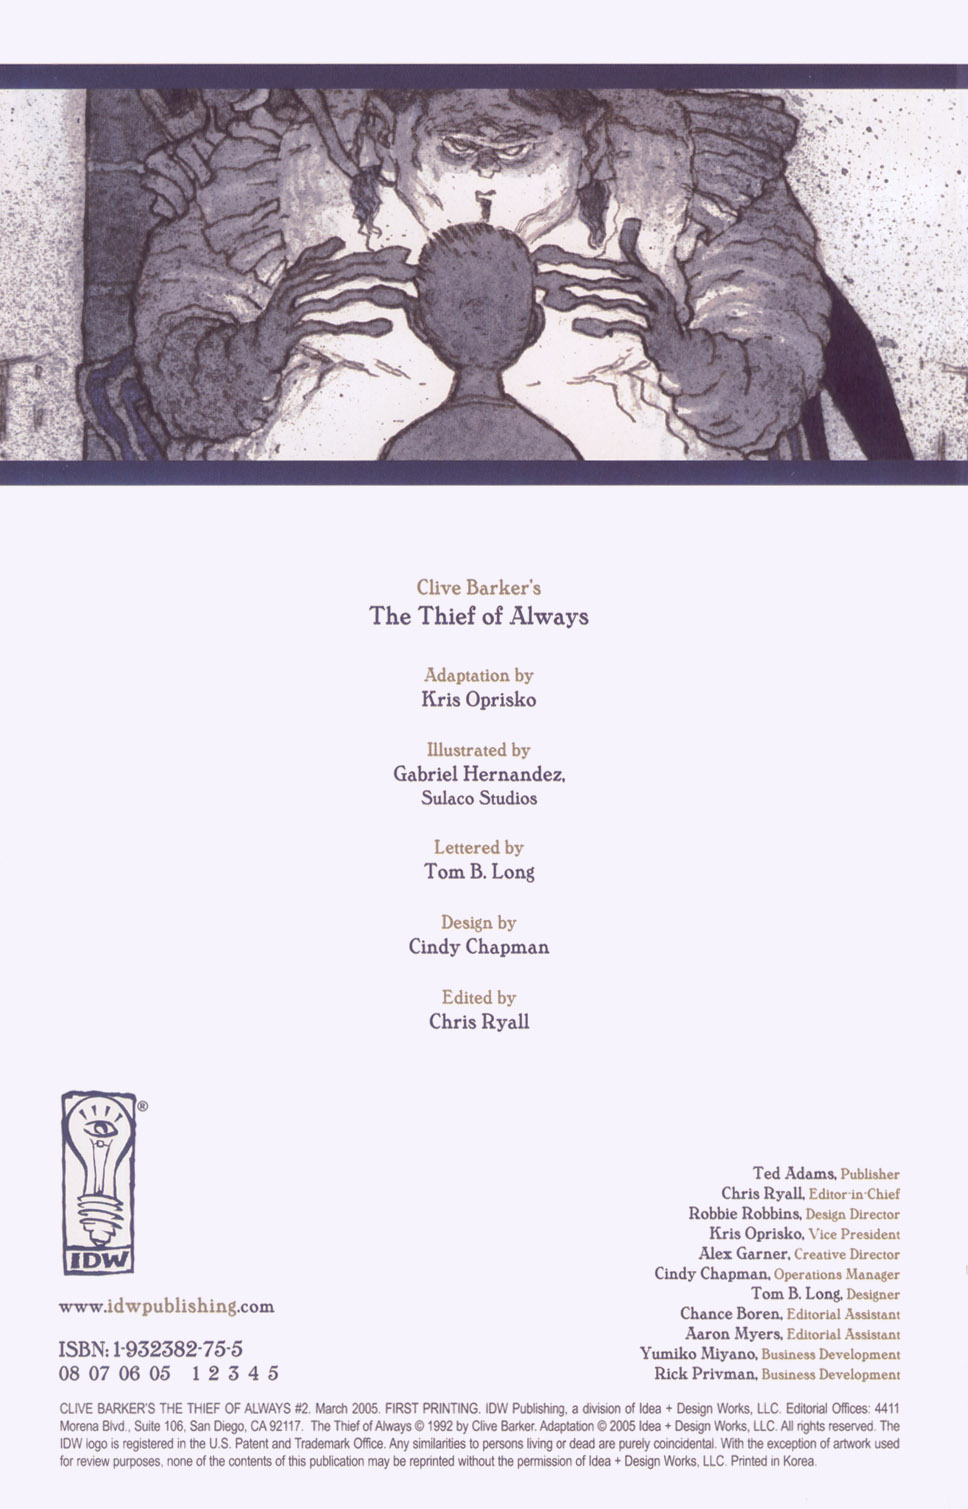 Read online Clive Barker's The Thief Of Always comic -  Issue #2 - 3